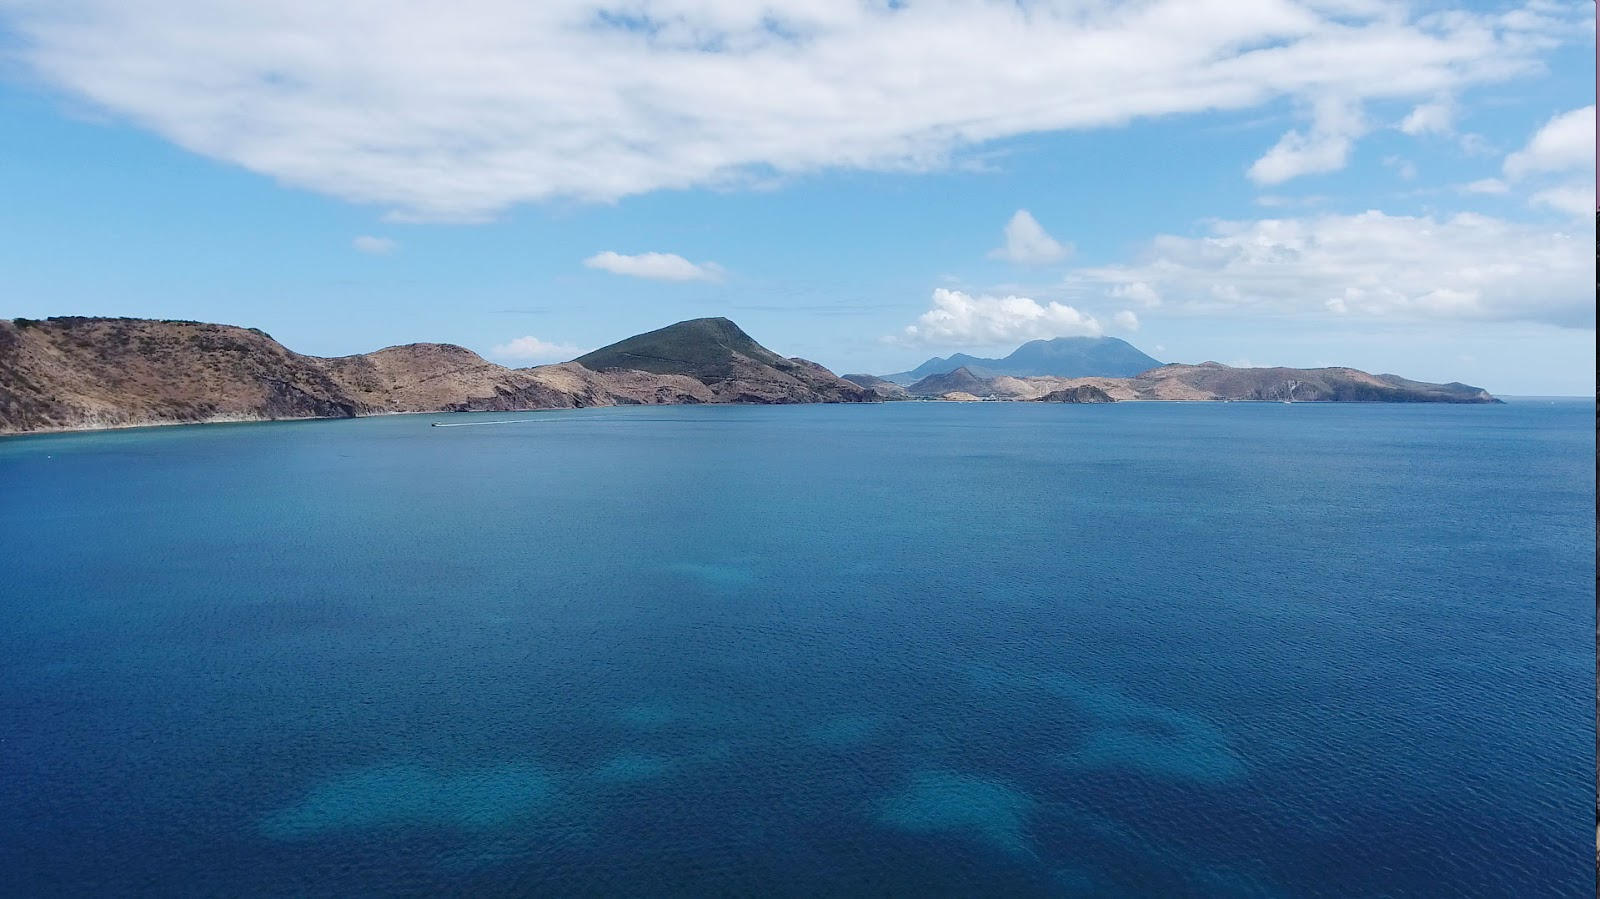 Drone image of Frigate Bay, St. Kitts